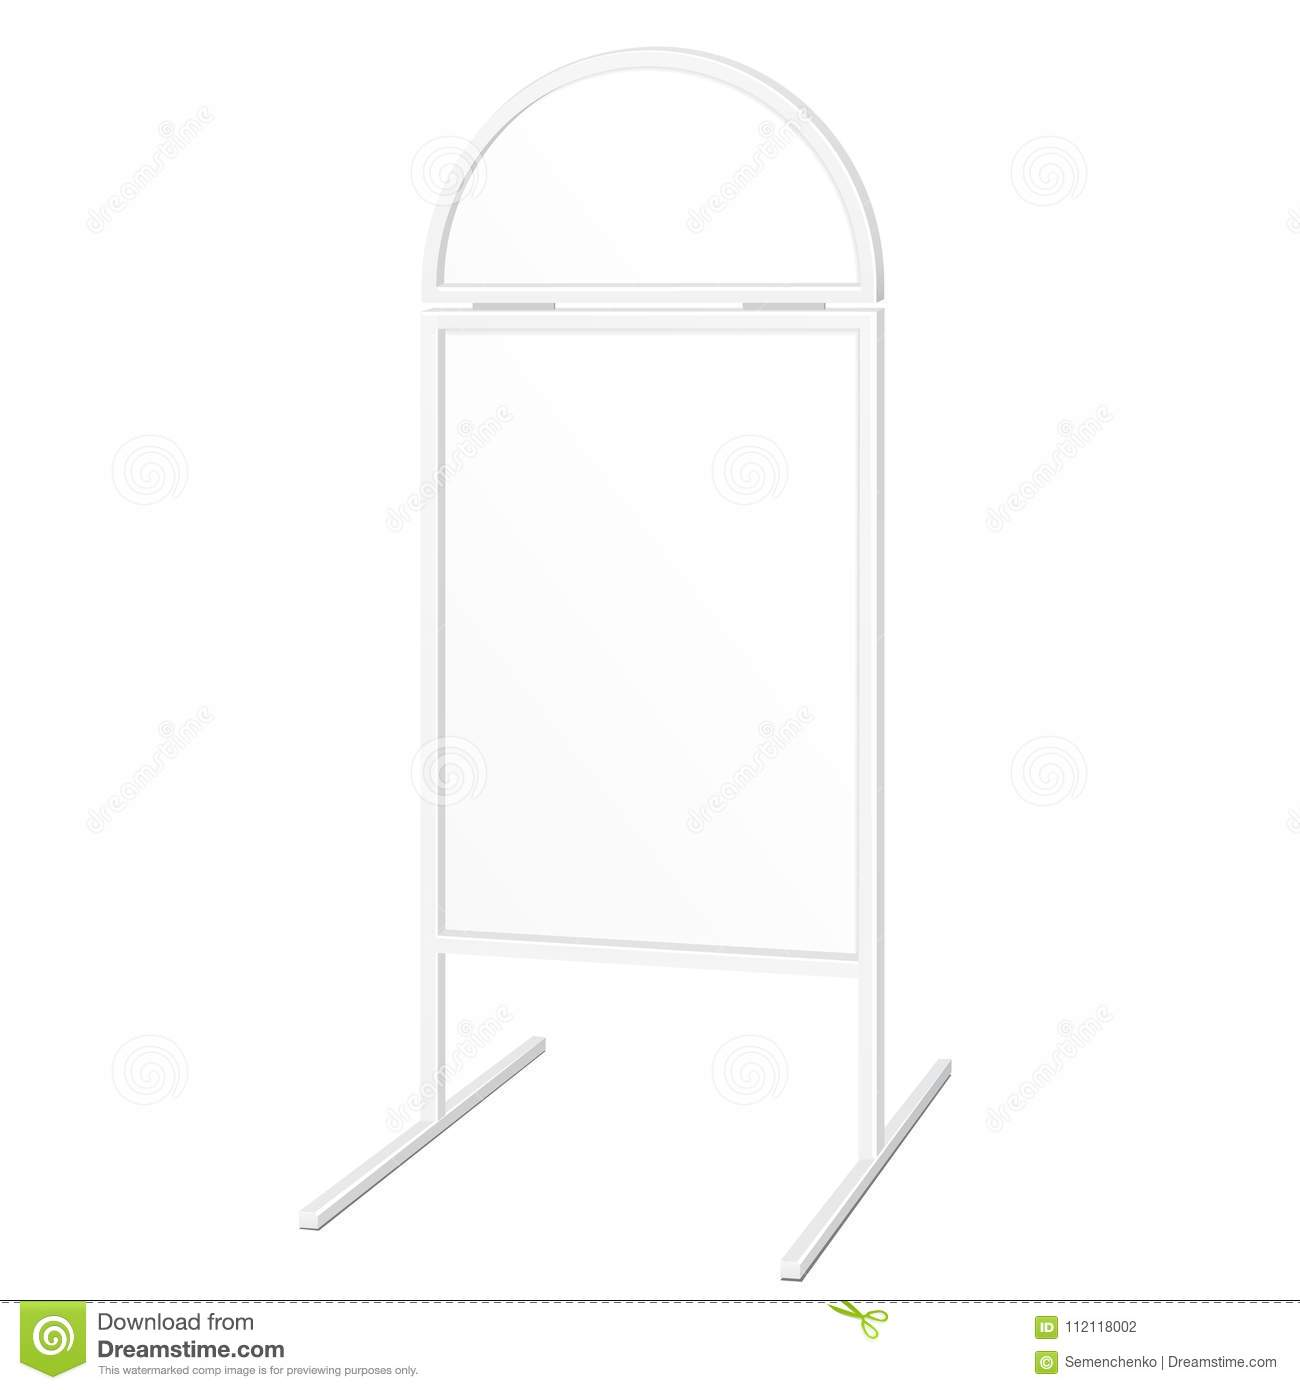 Simple Outdoor Indoor Stander Advertising Stand Banner Shield Display, Advertising. Illustration Isolated.